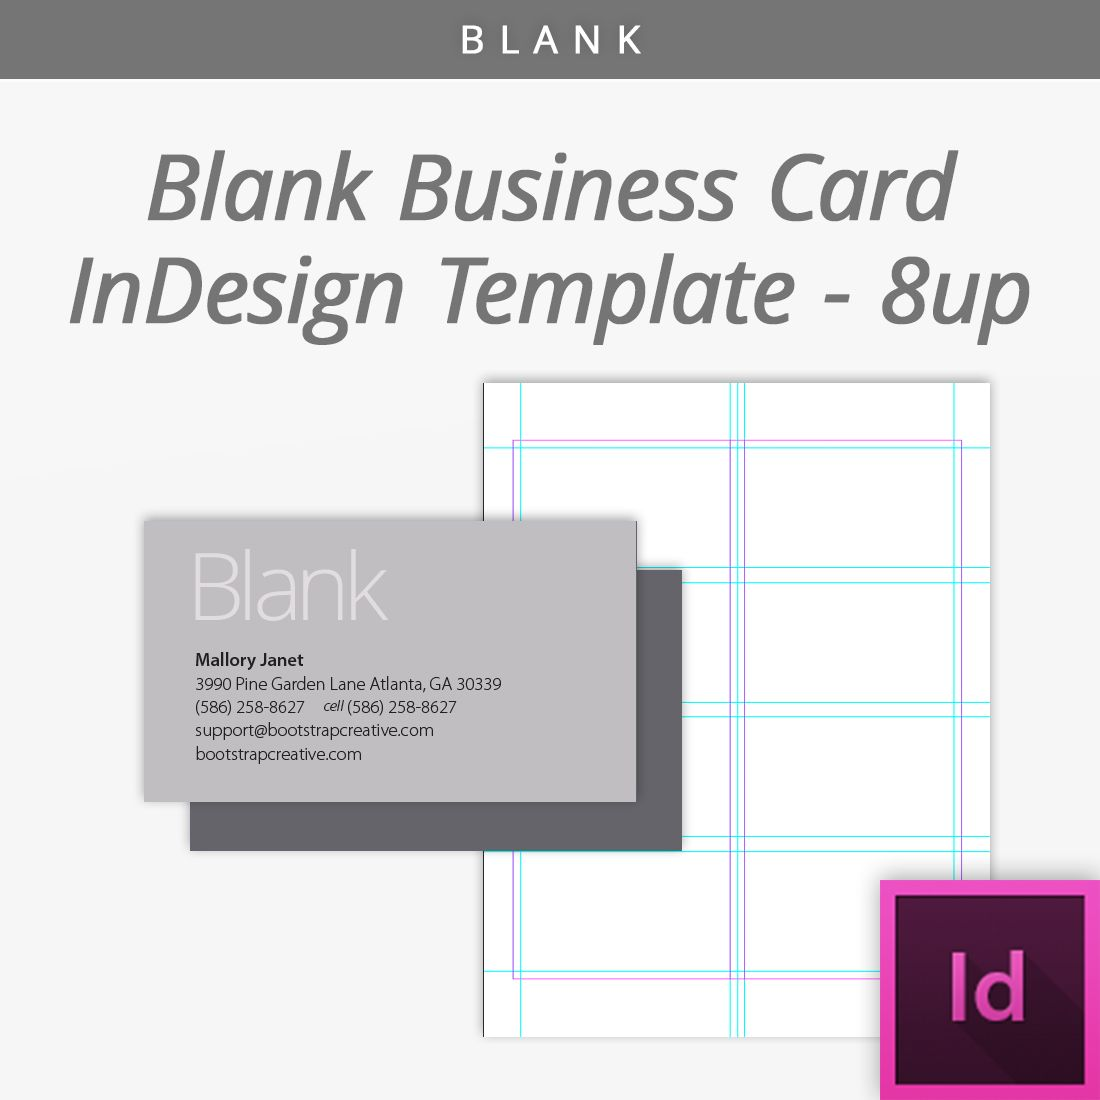 Blank indesign business card template 8 up free download for Template of business card